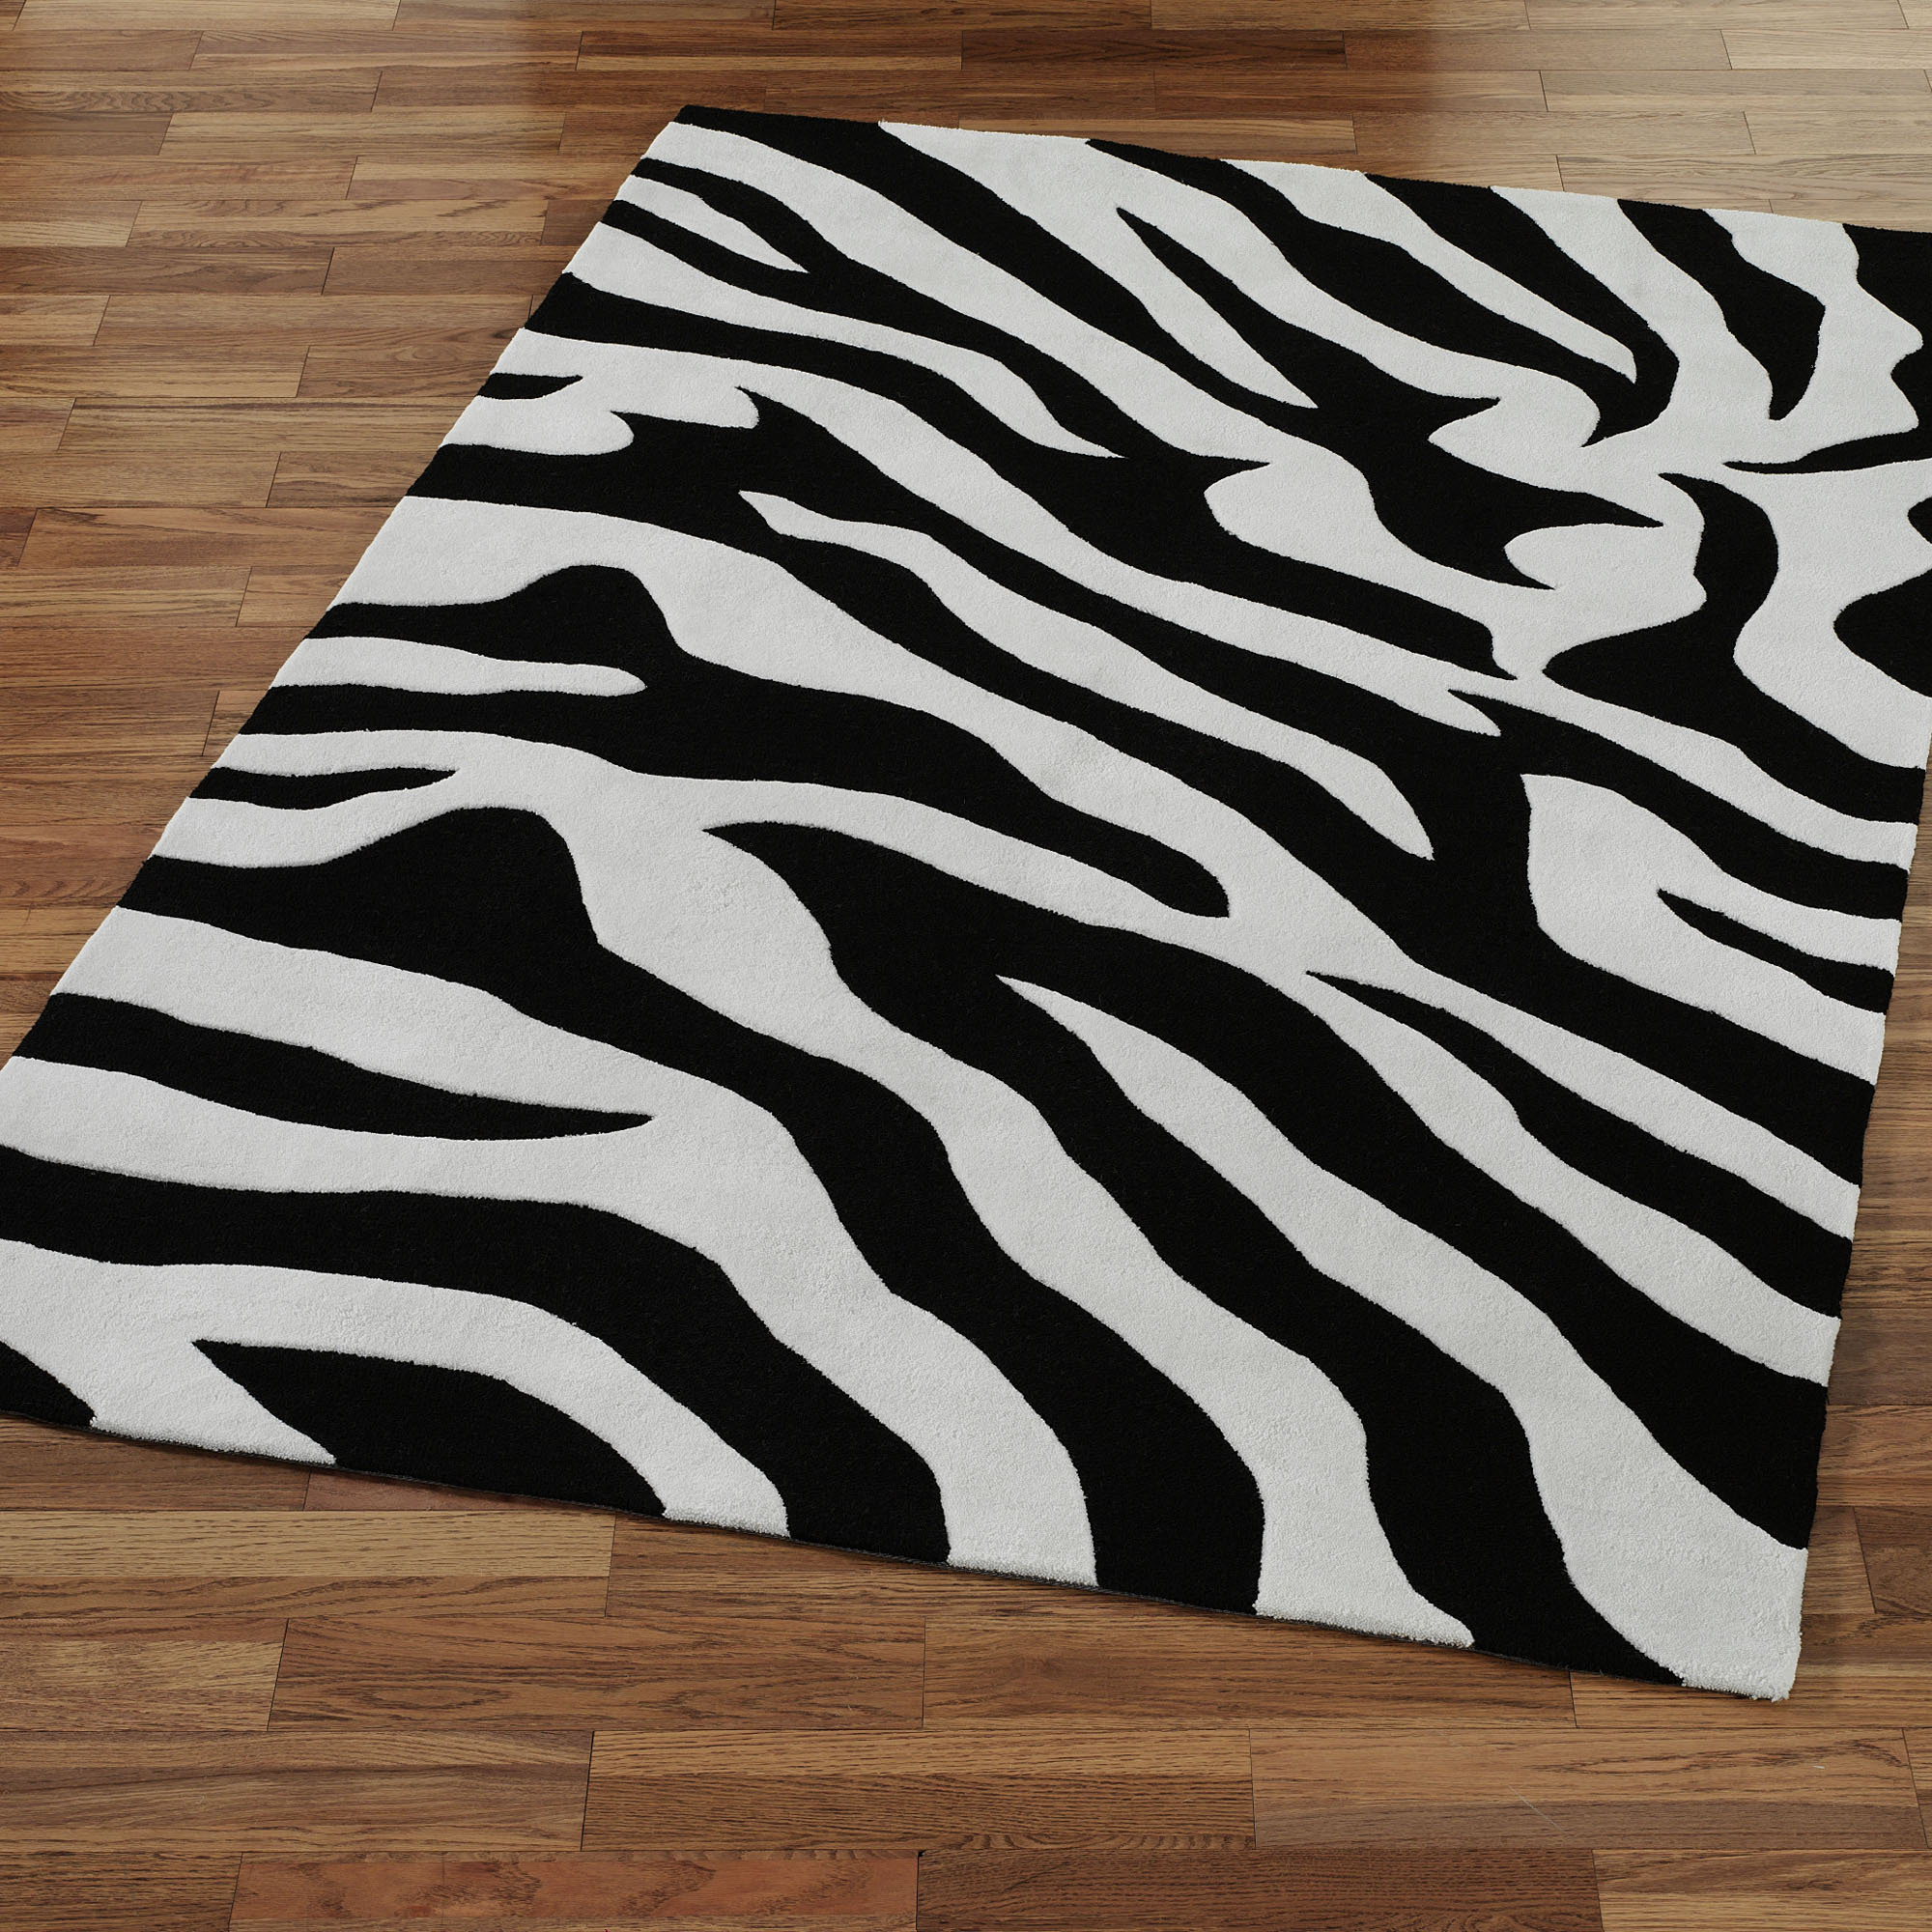 Animal Skin Area Rugs Roselawnlutheran